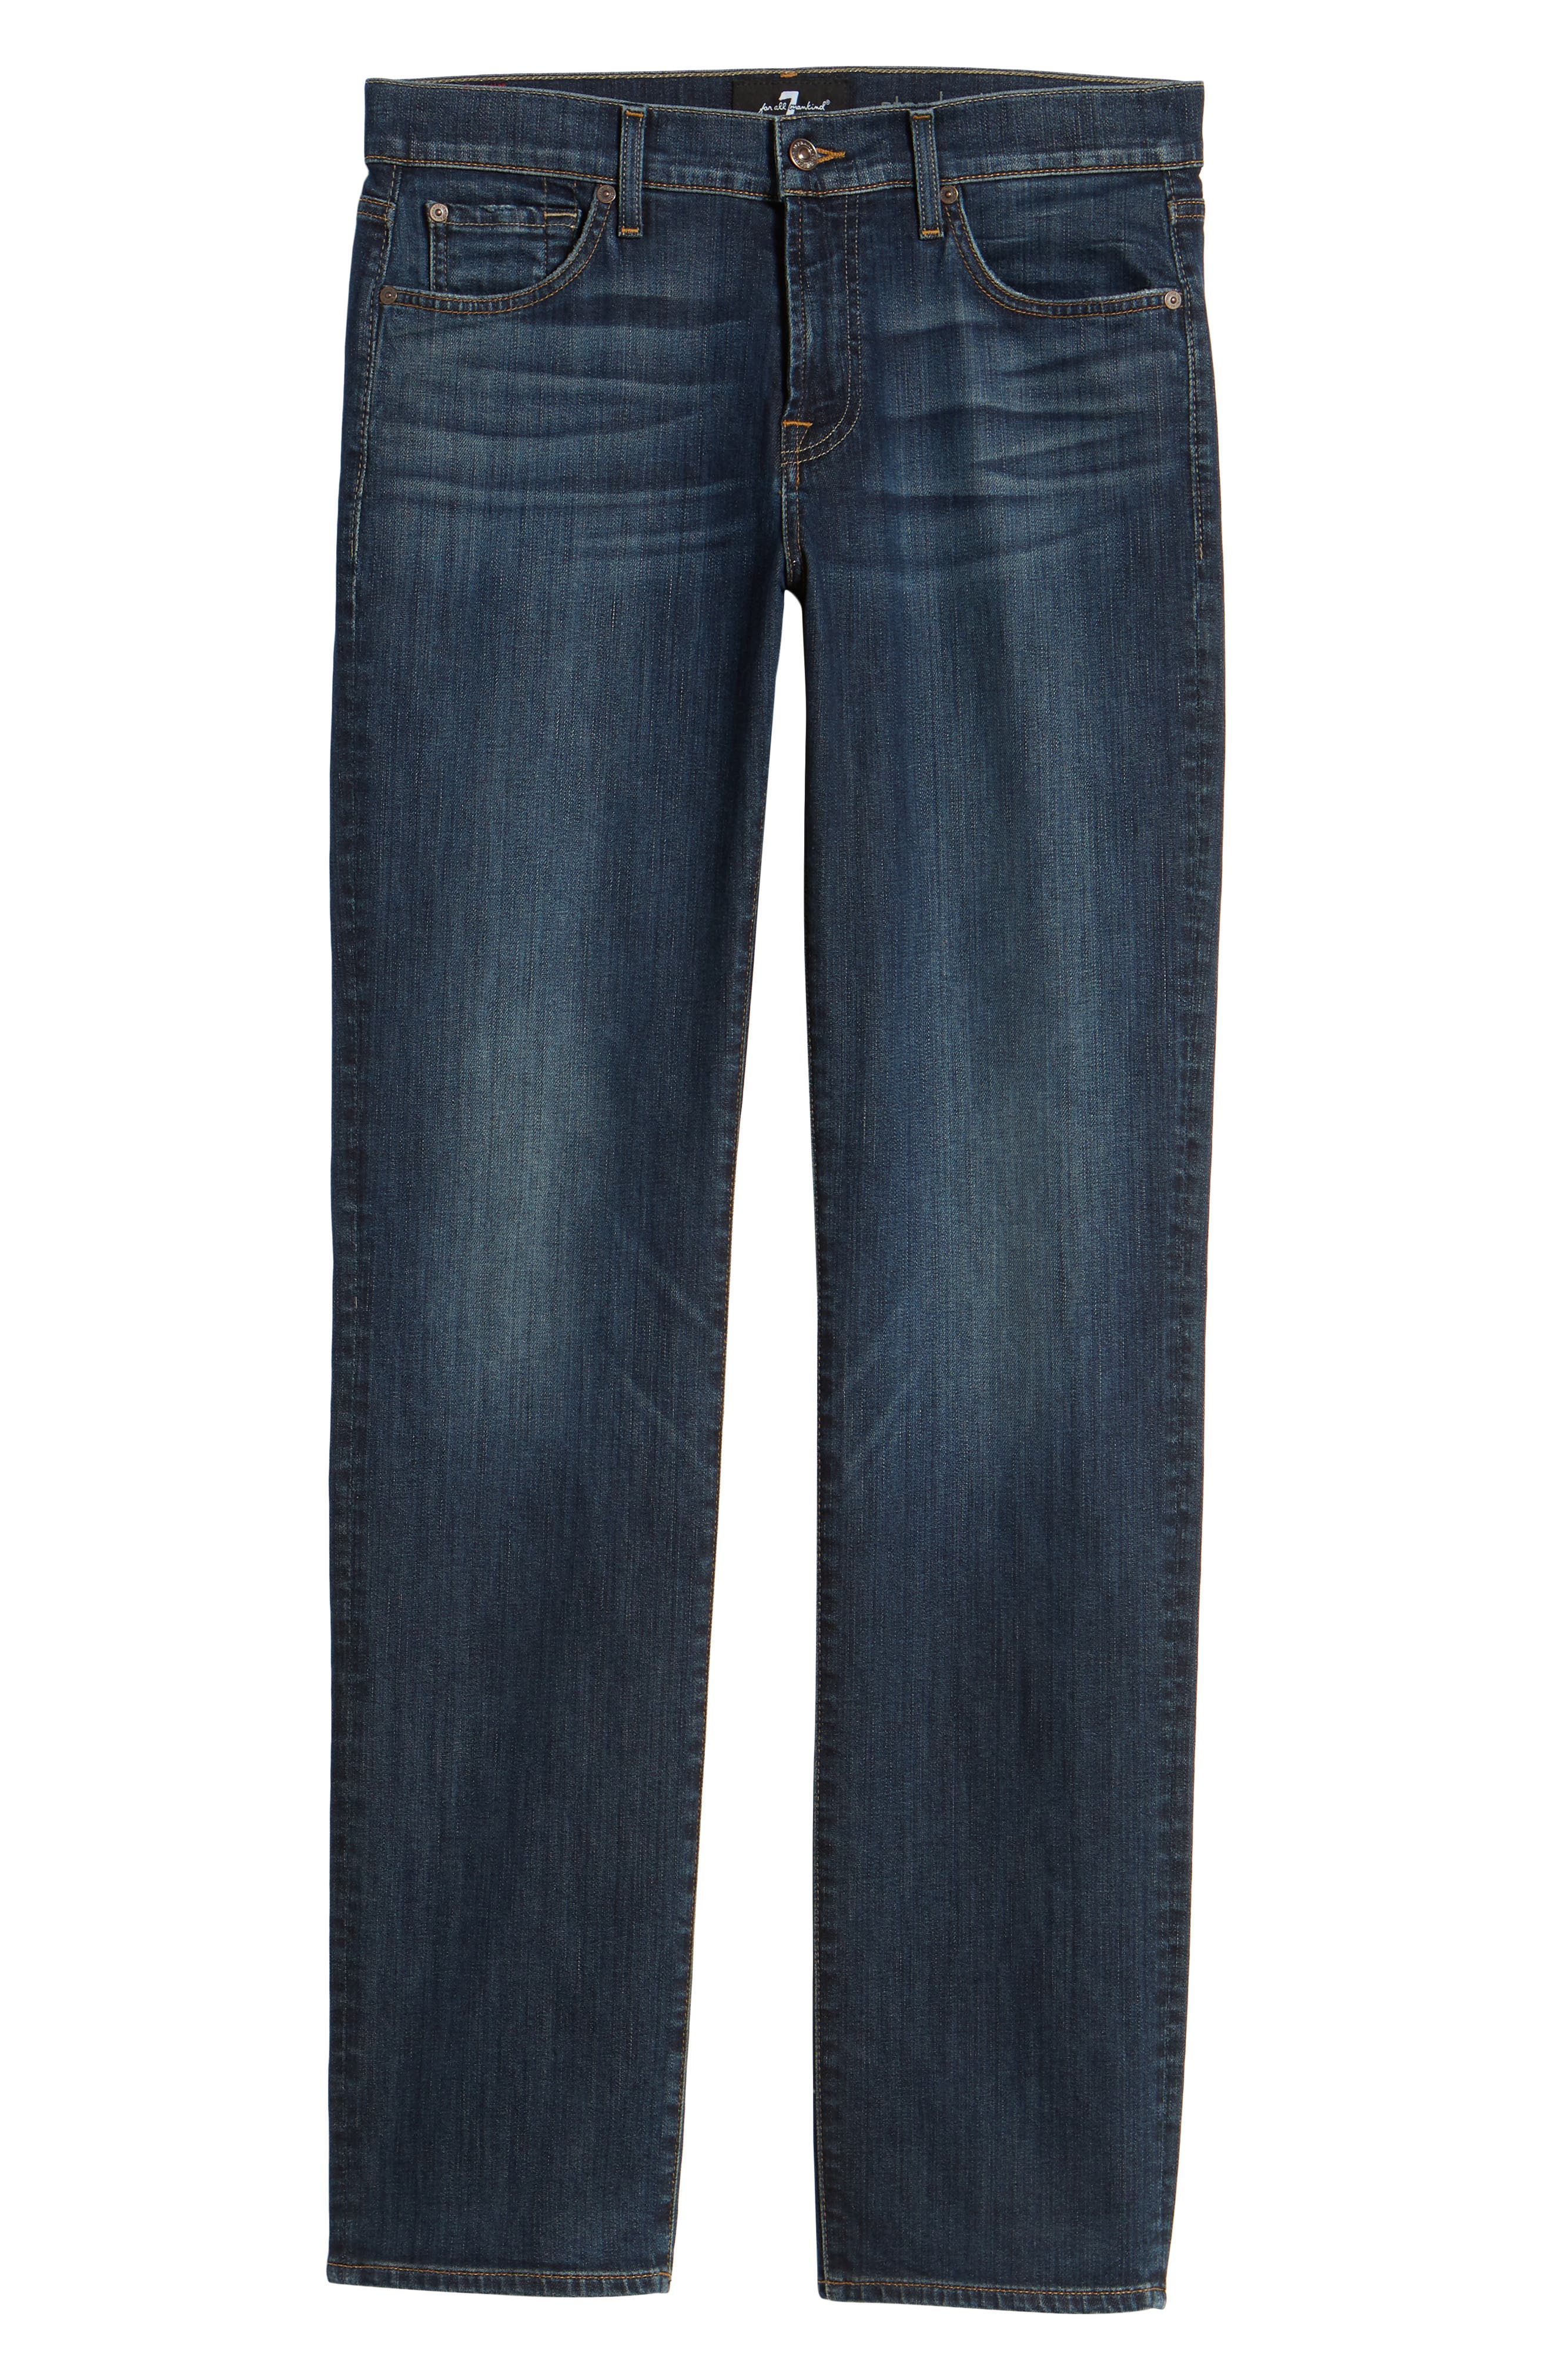 7 FOR ALL MANKIND<SUP>®</SUP>, Luxe Performance Standard Straight Leg Jeans, Alternate thumbnail 7, color, LUXE PERFORMANCE YELM